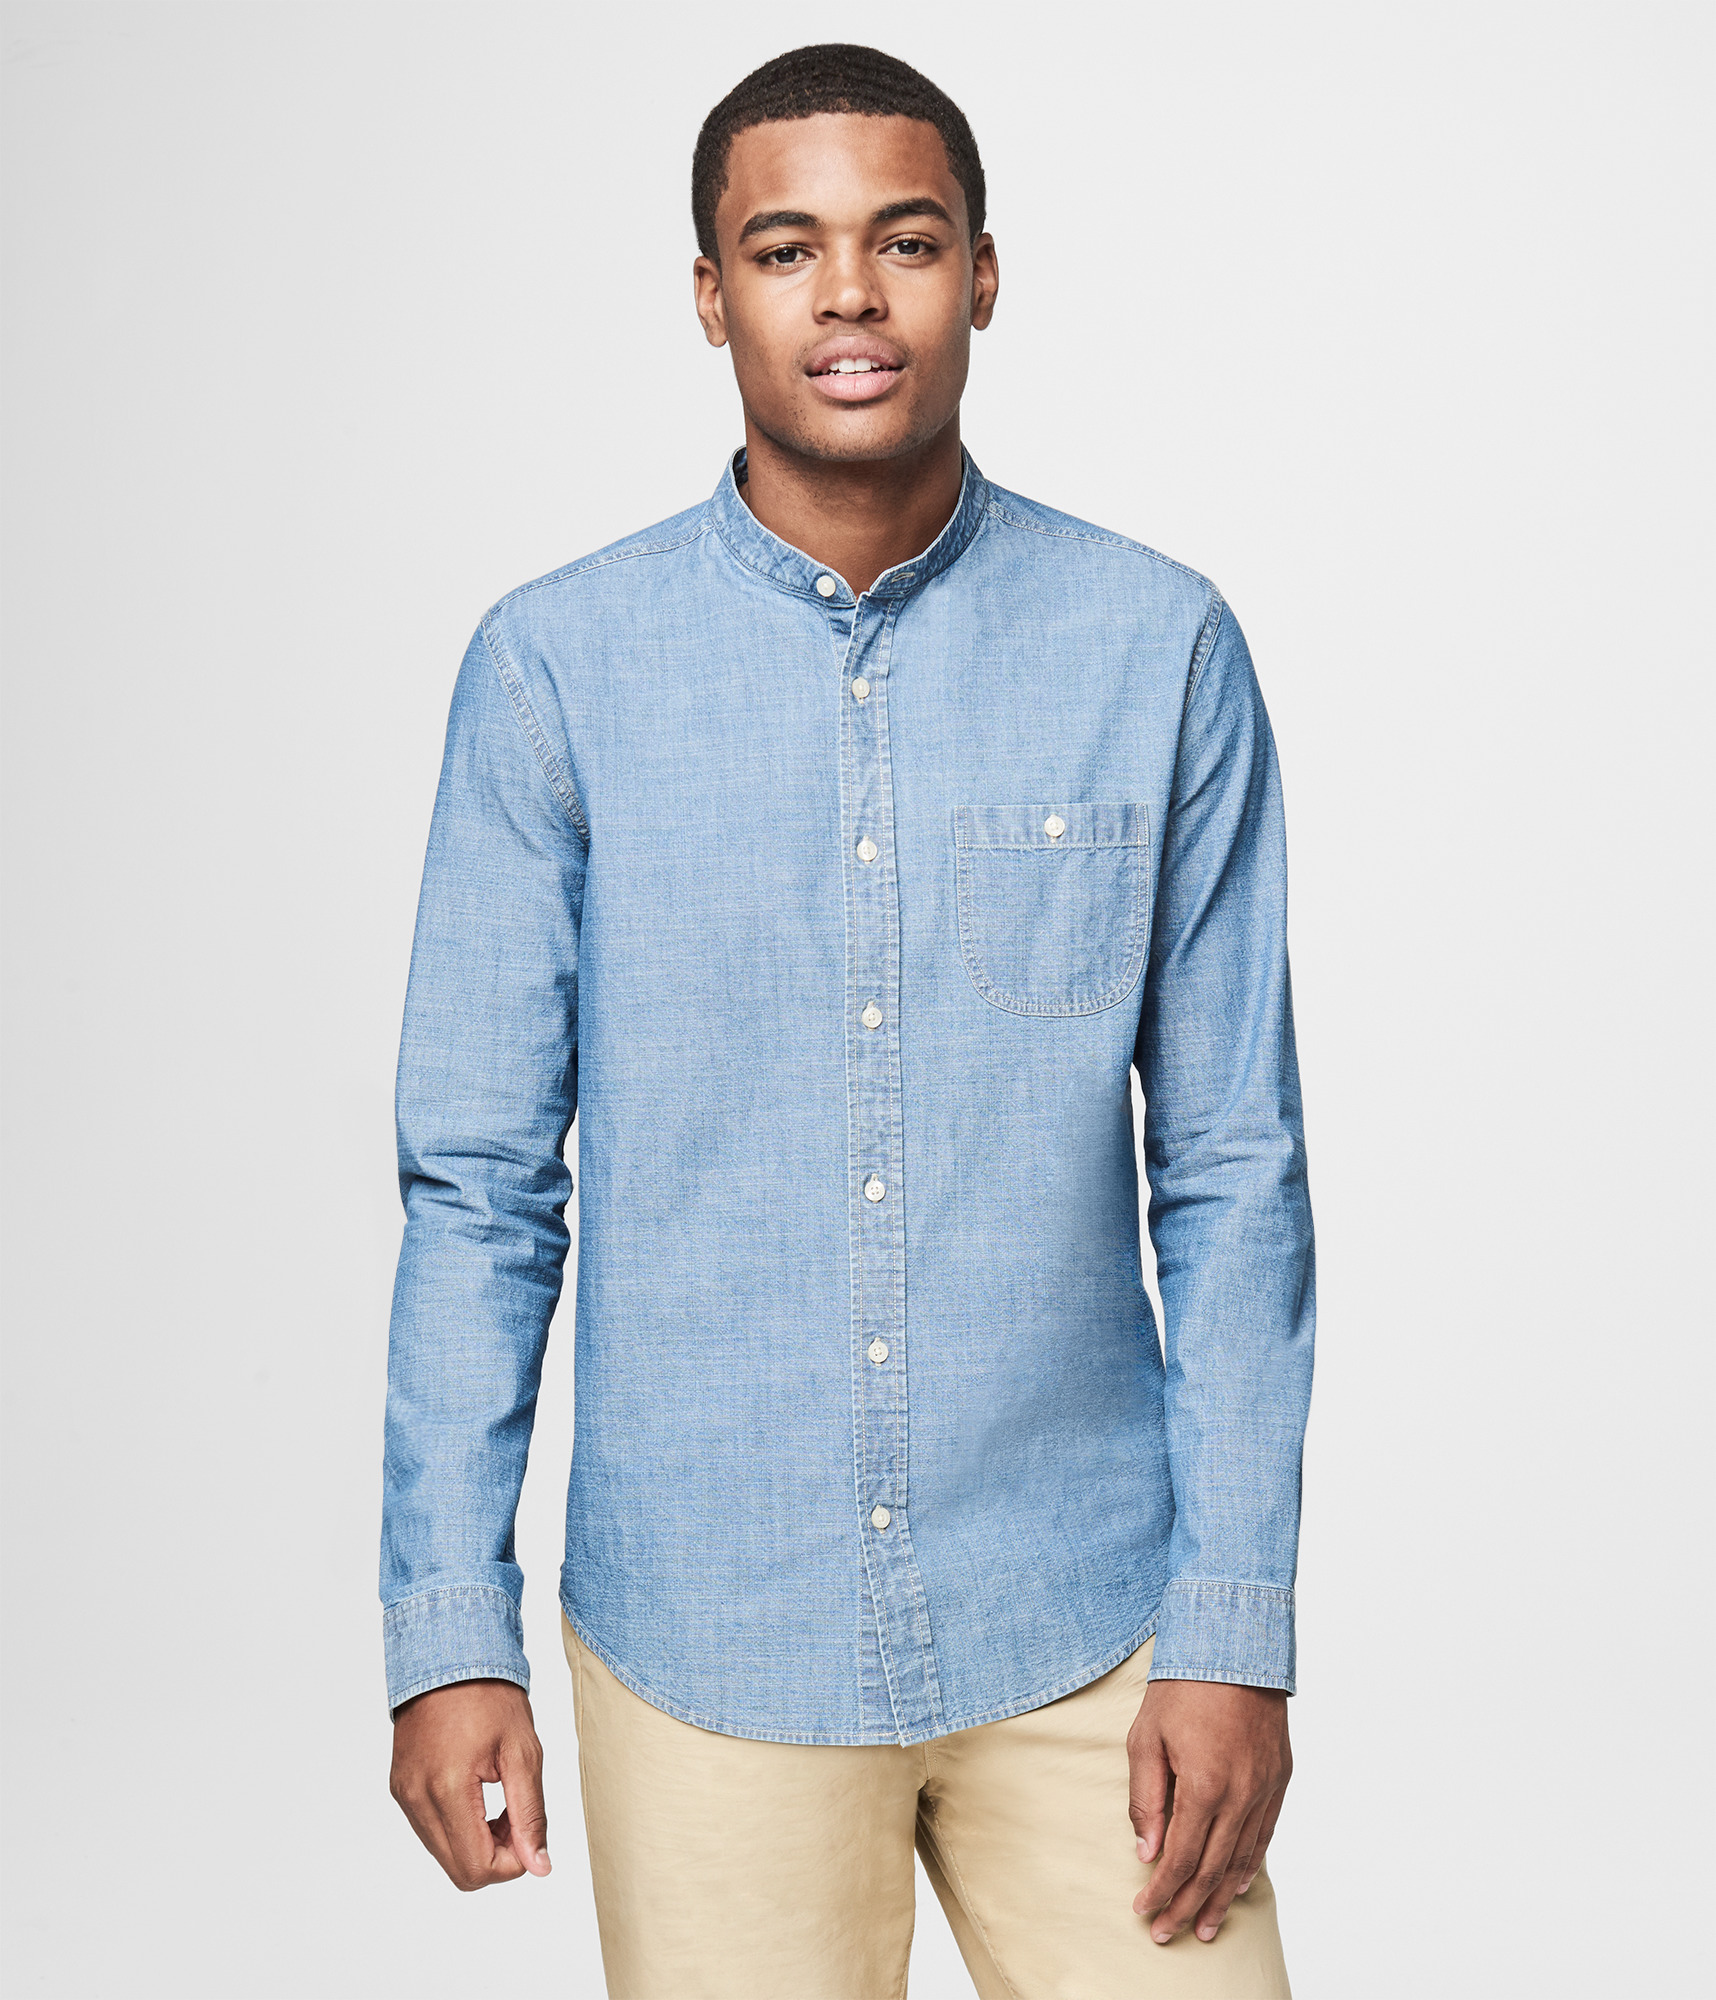 Banded Collar Shirt Button Down Shirts Aeropostale